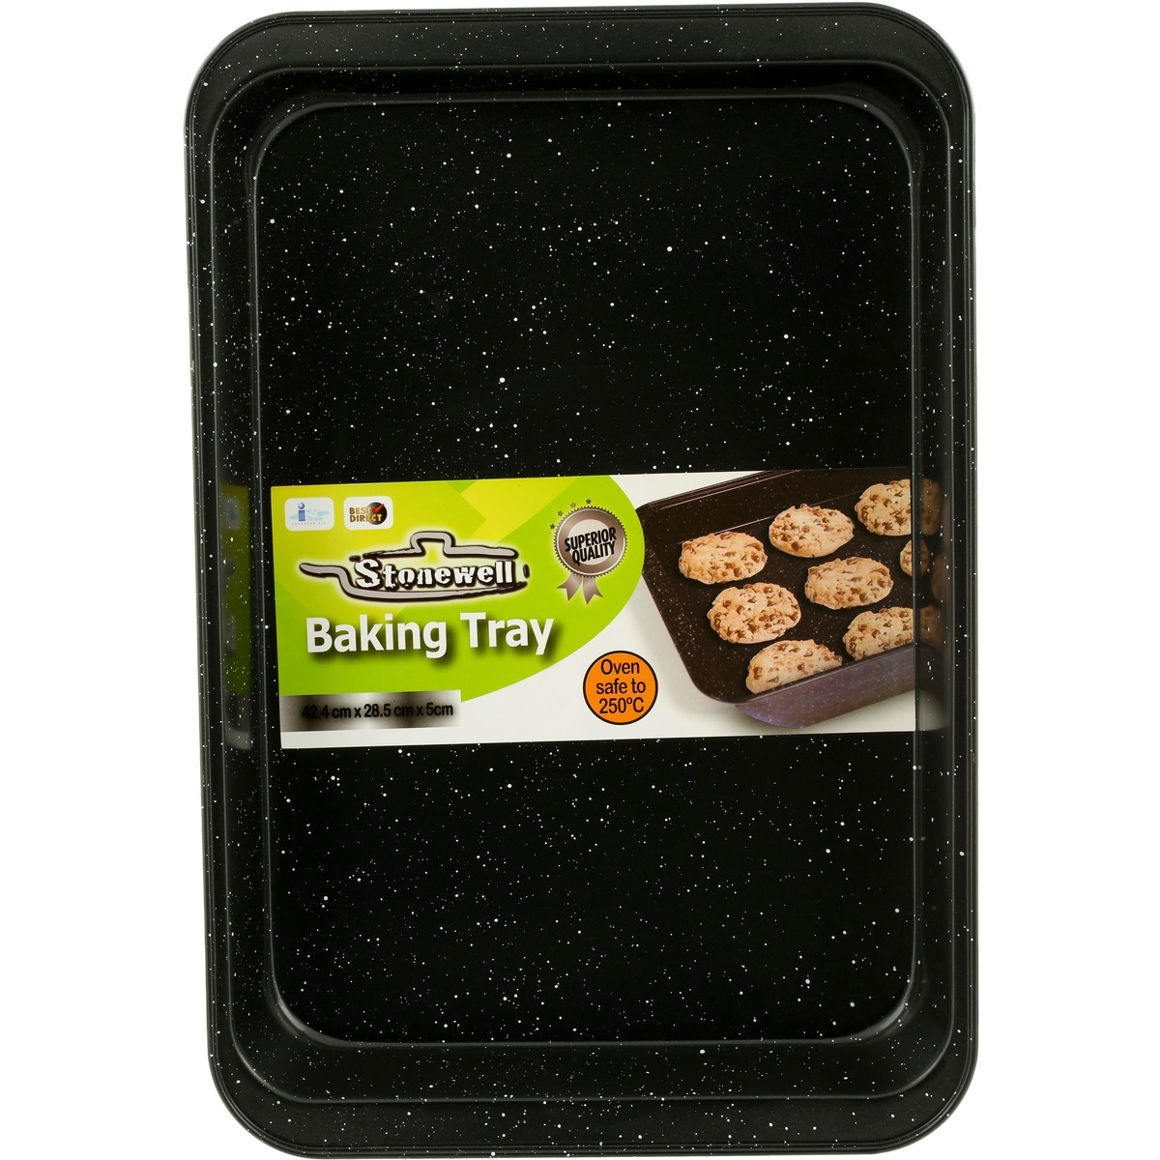 Stonewell Baking Tray | Perfect for all your baking needs | Non stick